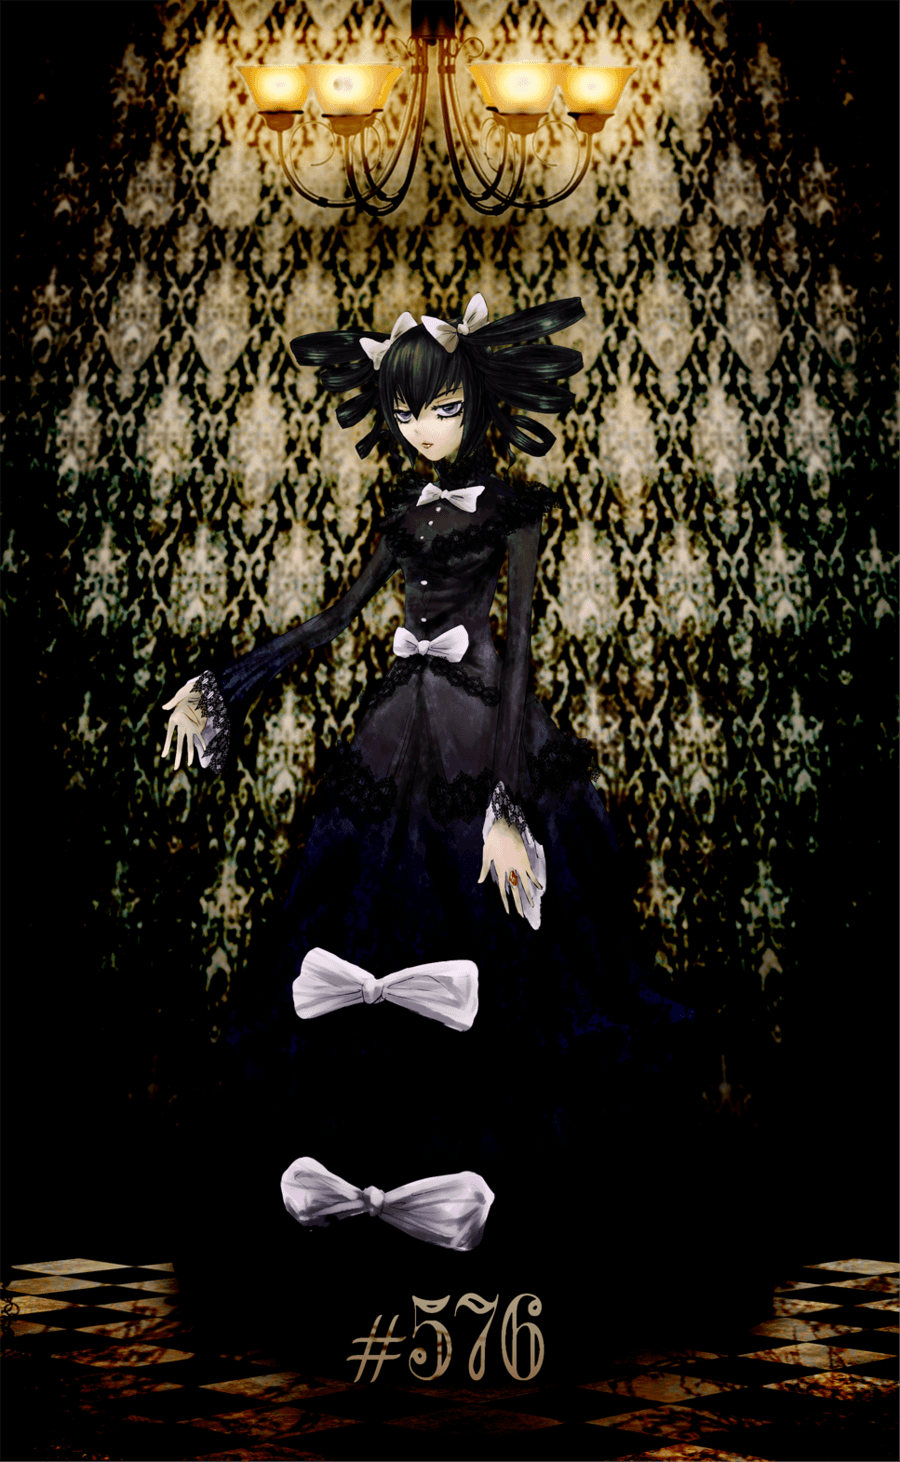 Gothitelle personification by moontown0125 on DeviantArt